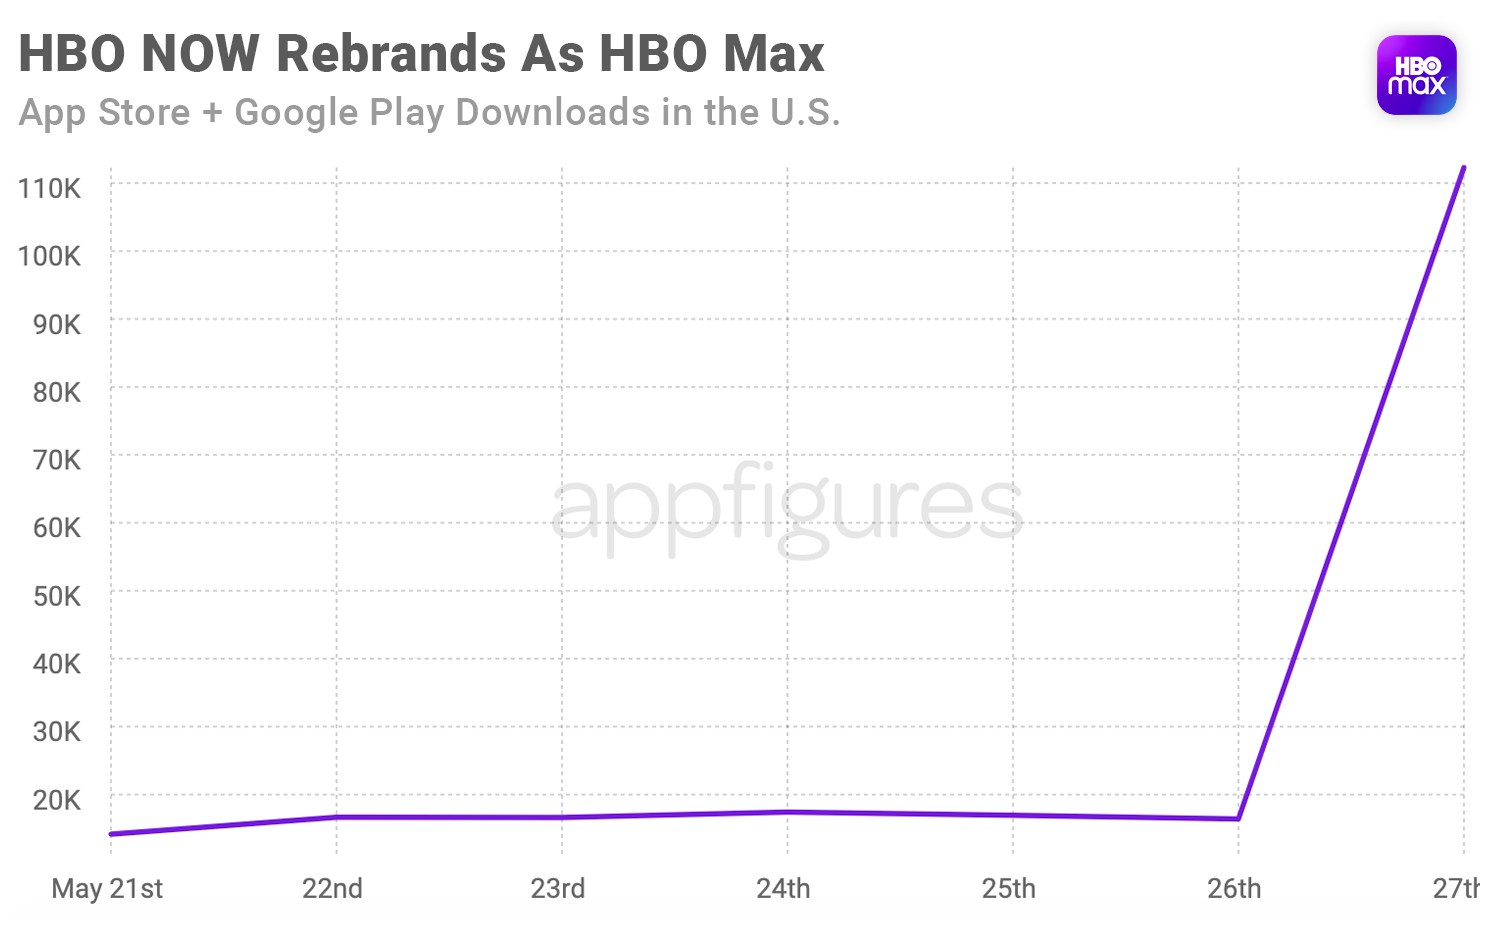 HBO Max downloads on the App Store and Google Play